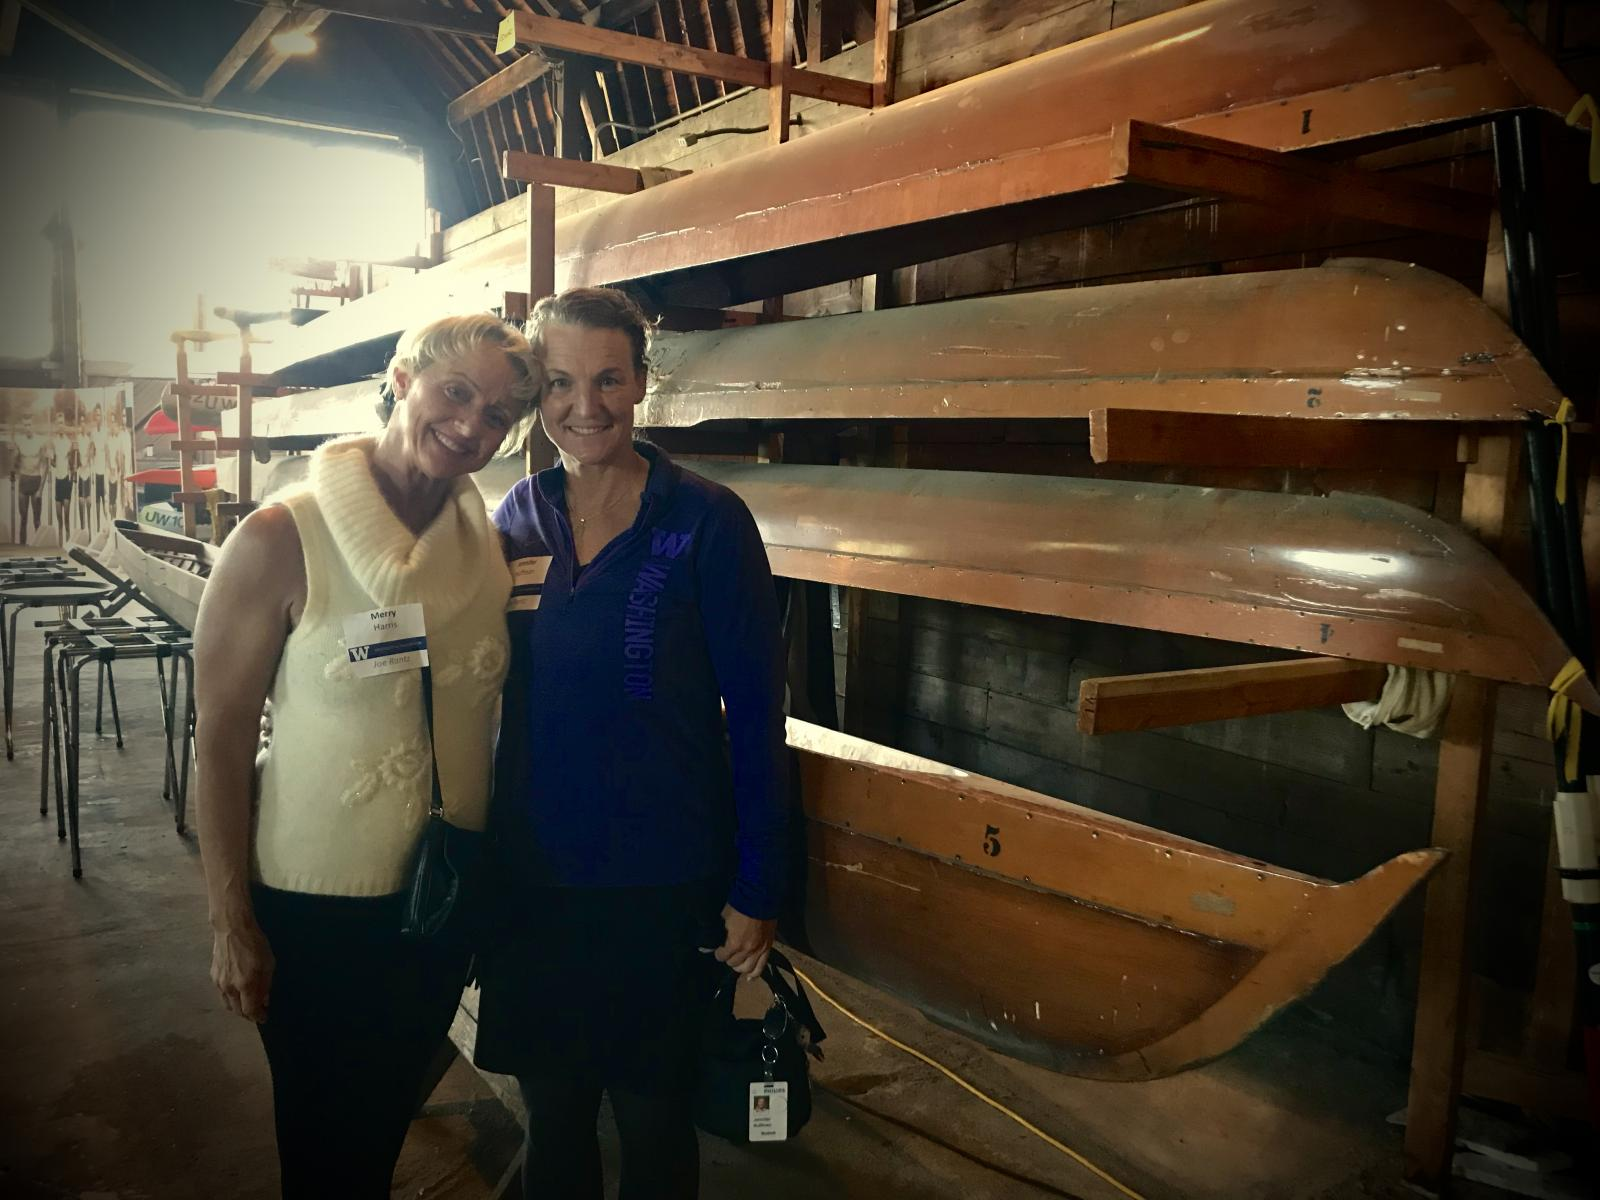 Merry Christine Harris and Jennifer Huffman in the University of Washington crew boat house at the Boys of '36